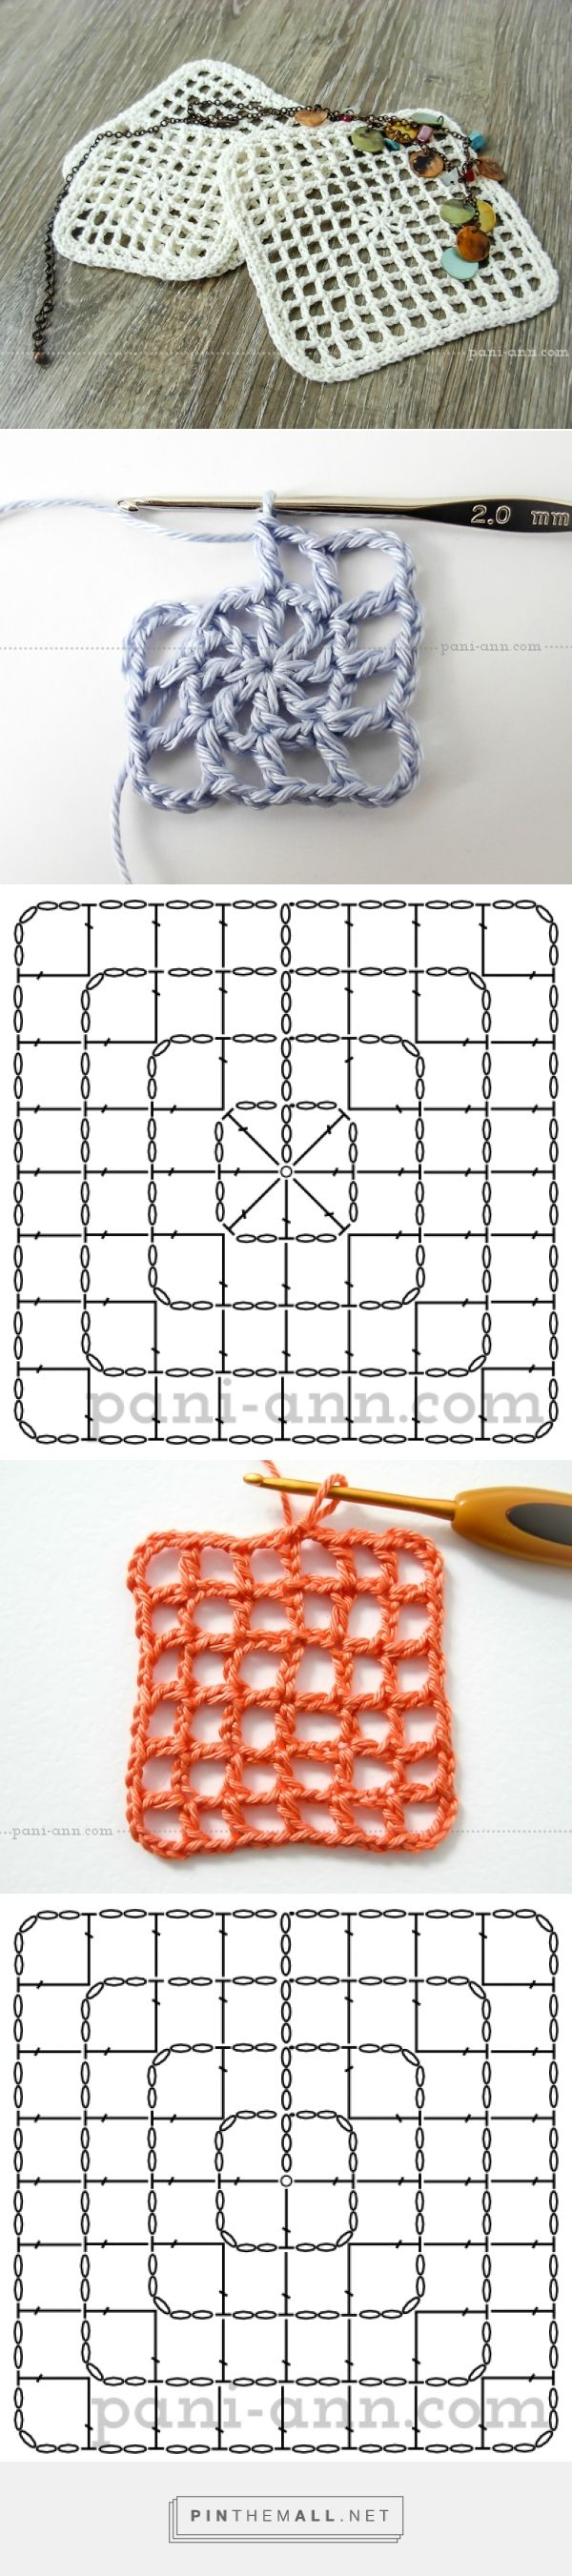 Kissenbezug häkeln Rückseite - big granny crochet - filet crochet in the round to create square - picture tutorial on site